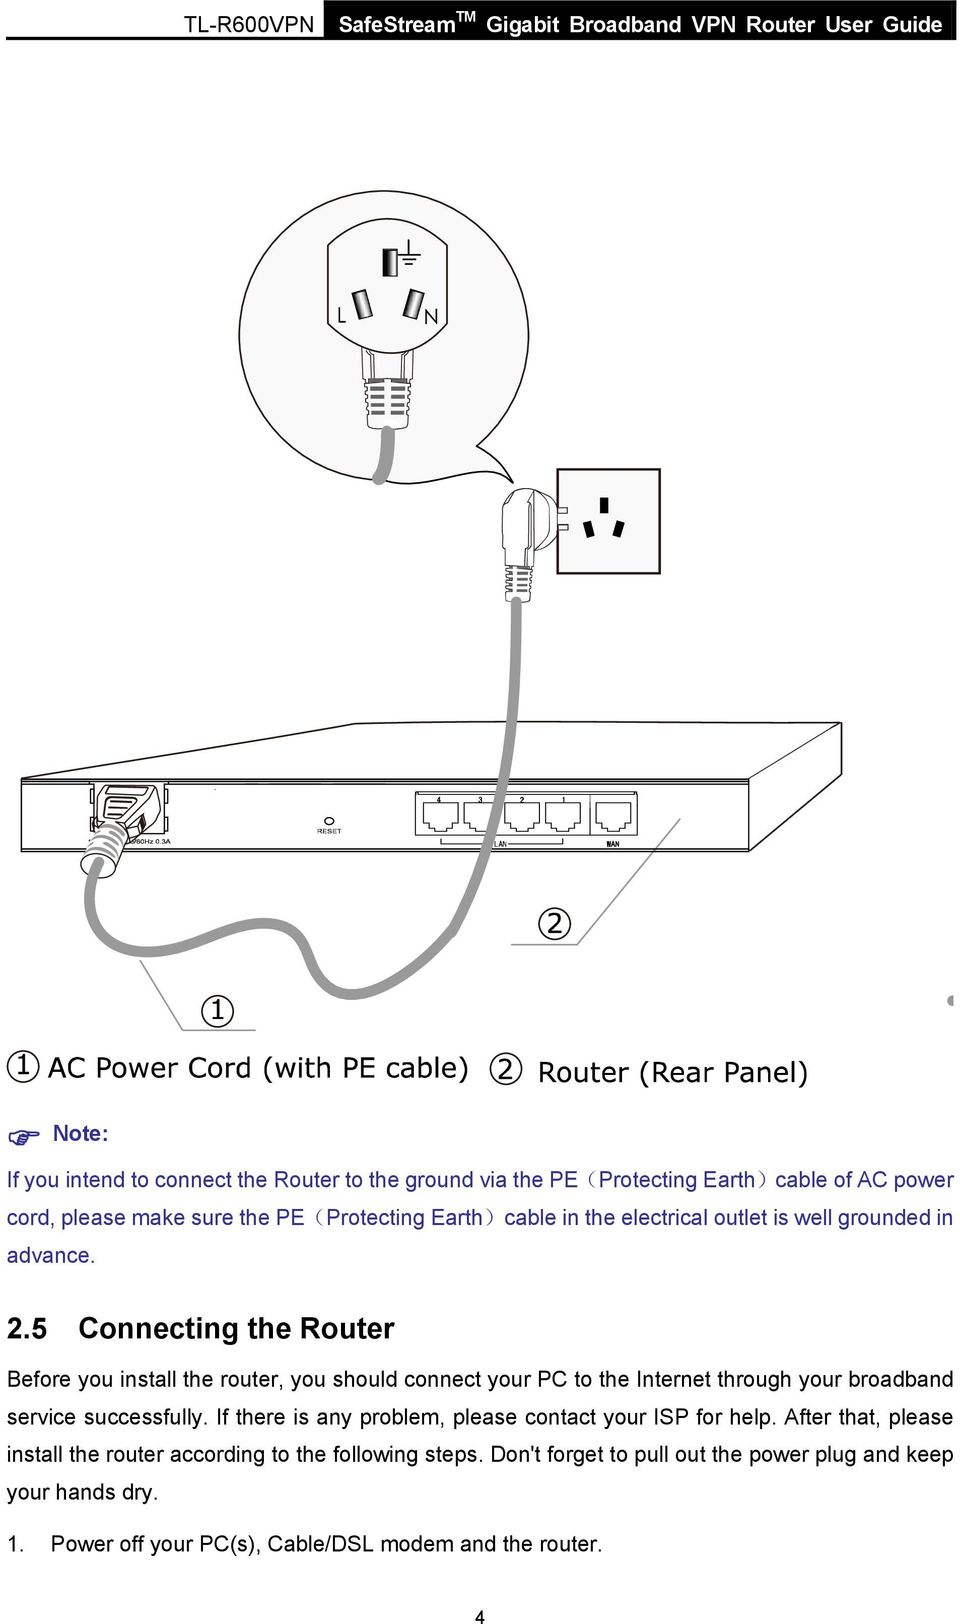 Tl R600vpn Safestream Tm Gigabit Broadband Vpn Router Rev Pdf Link To Diagram Of Internet Connection With Cable Dsl 5 Connecting The Before You Install Should Connect Your Pc